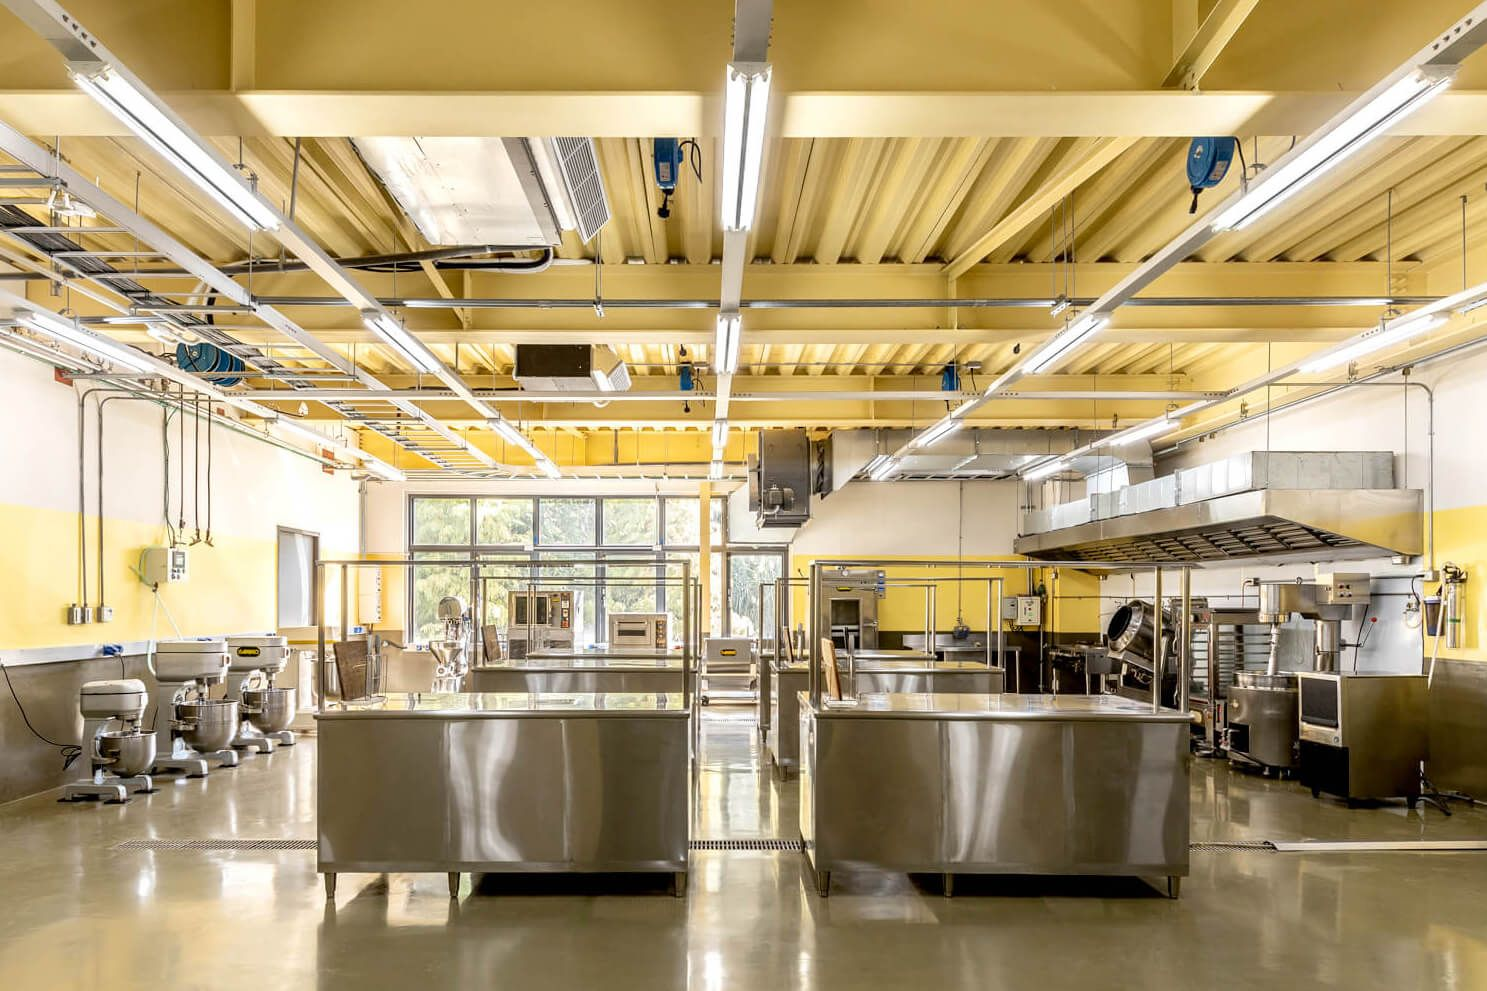 Food Solutions for Central Kitchen